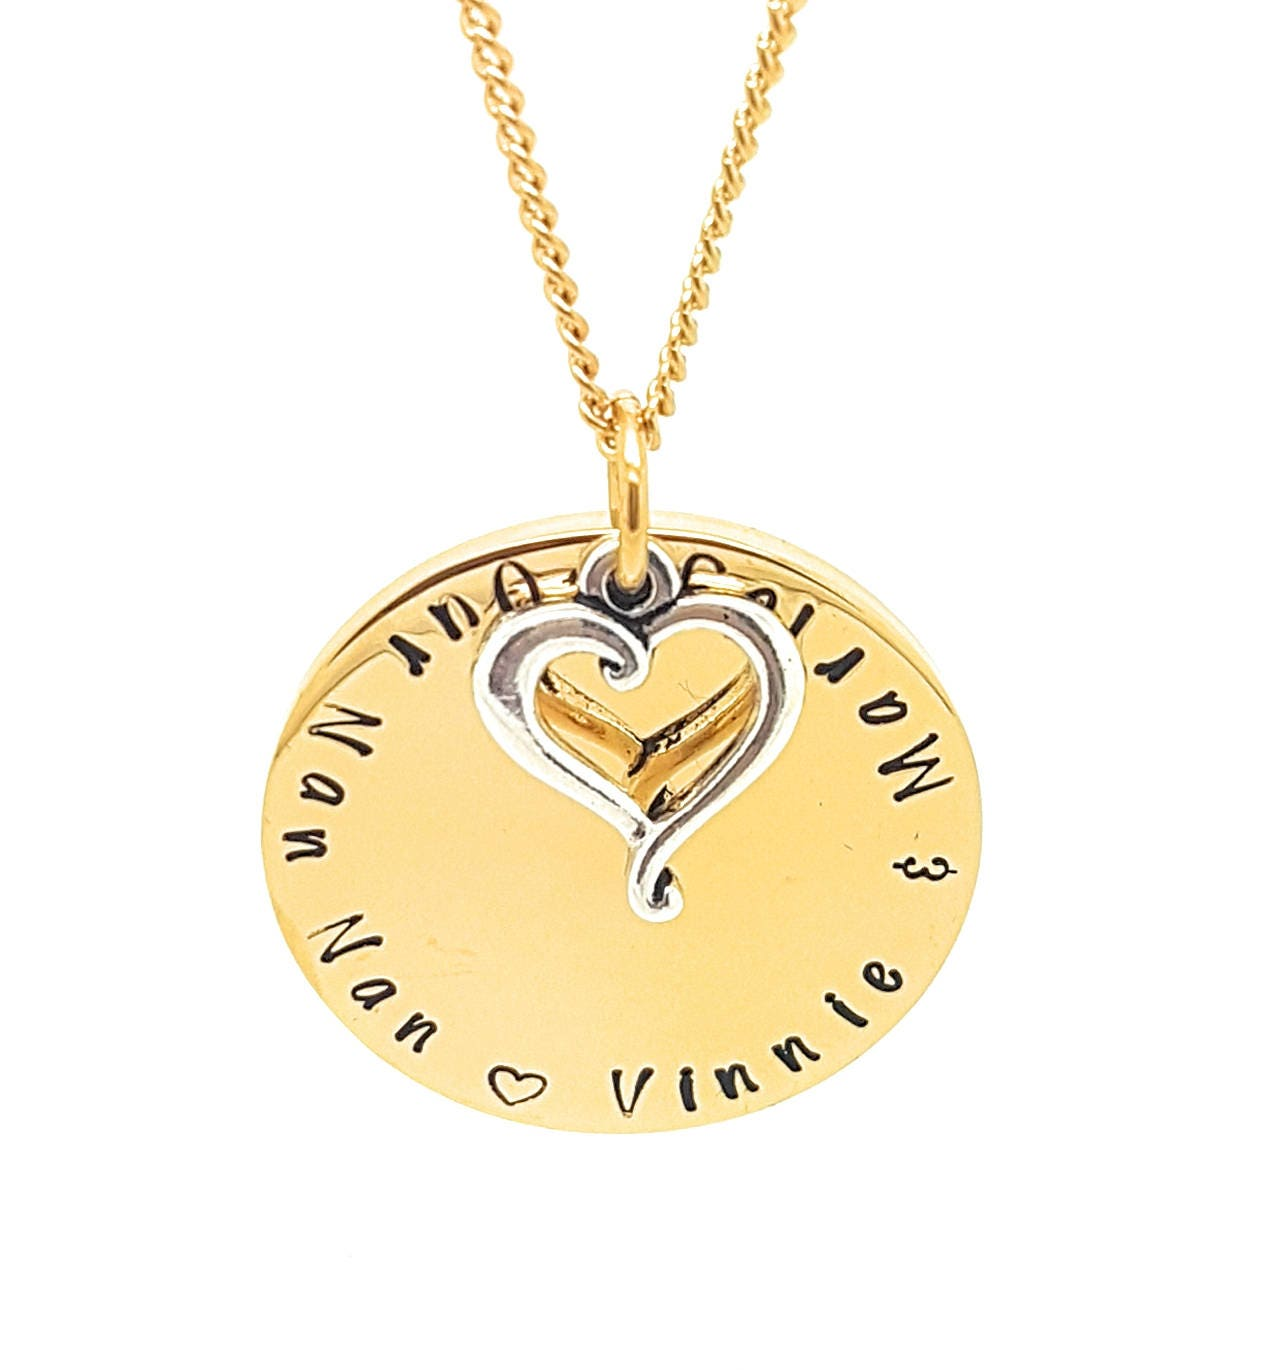 Fine Jewelry Personalized Heart Name Pendant Necklace col5Ub